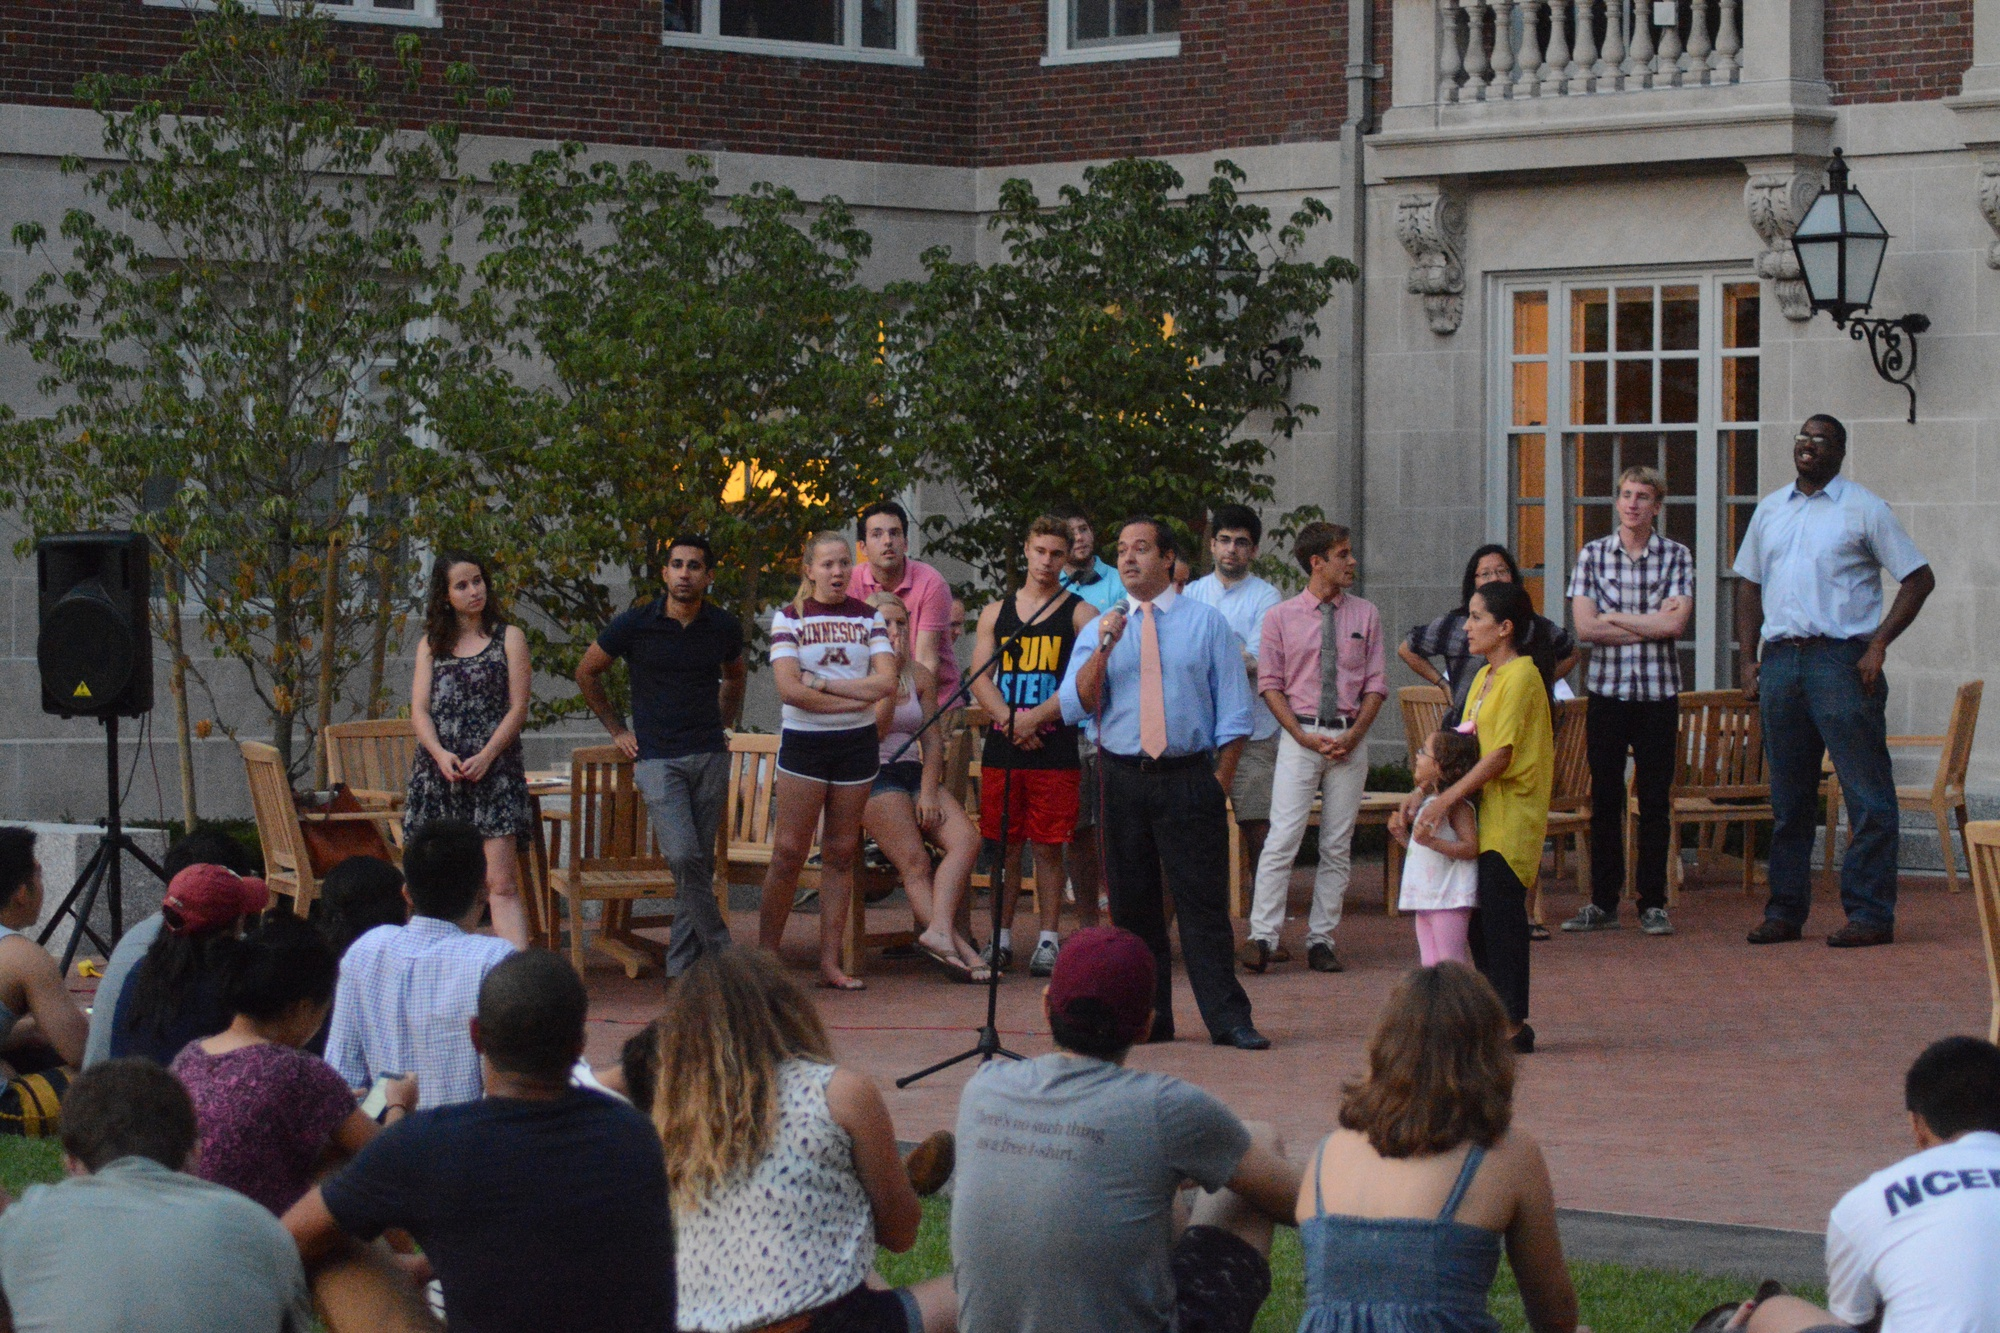 Carlos E. Díaz Rosillo, the Dunster House dean, addresses House residents at the House's tower relighting event on Tuesday.